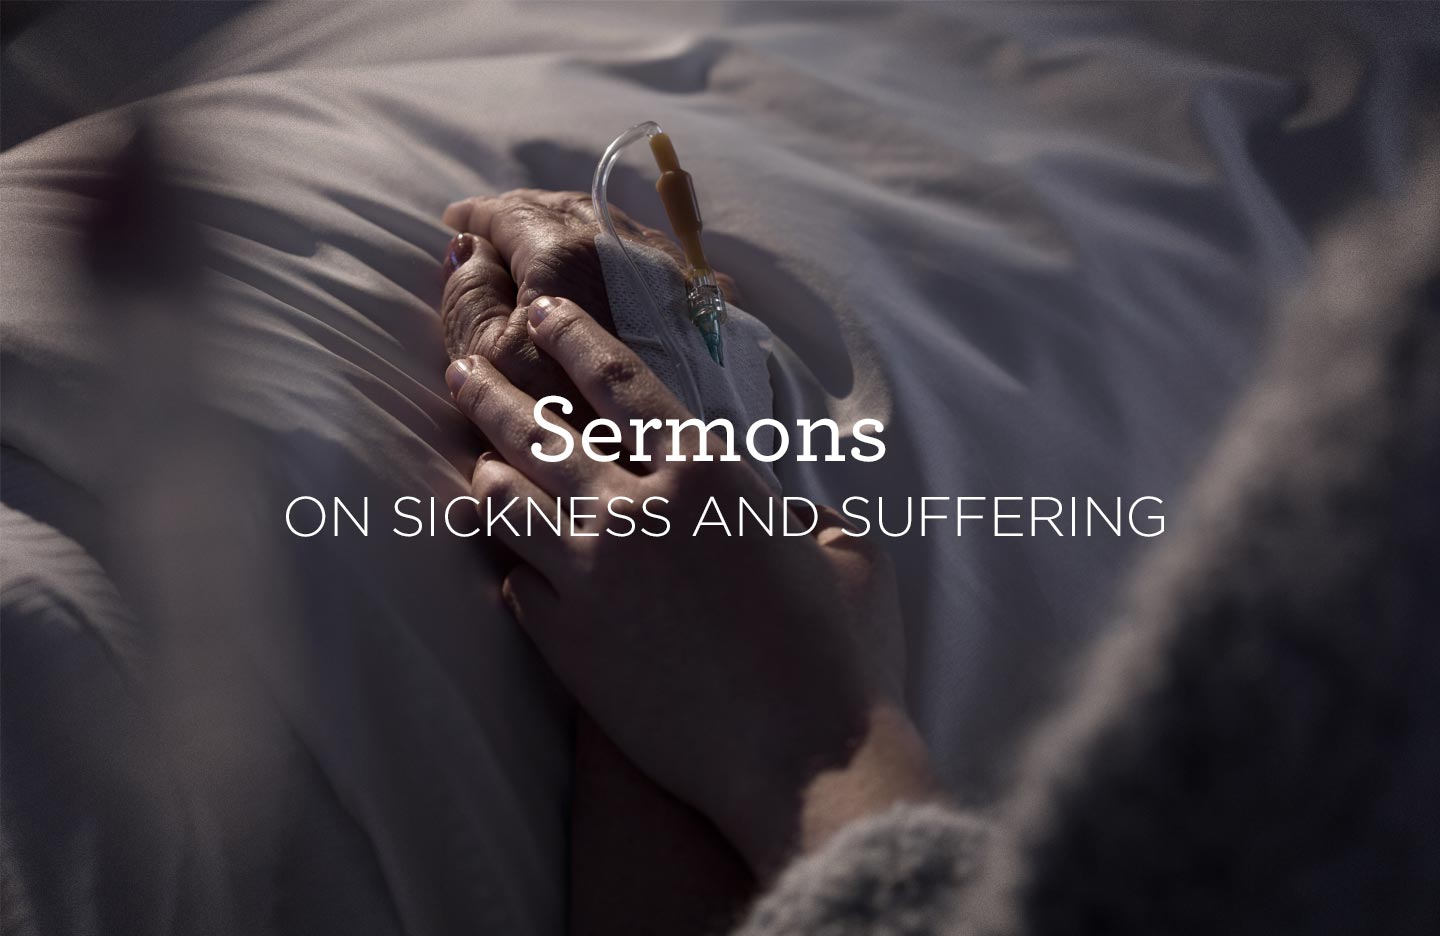 thumbnail image for Sermons on Sickness and Suffering